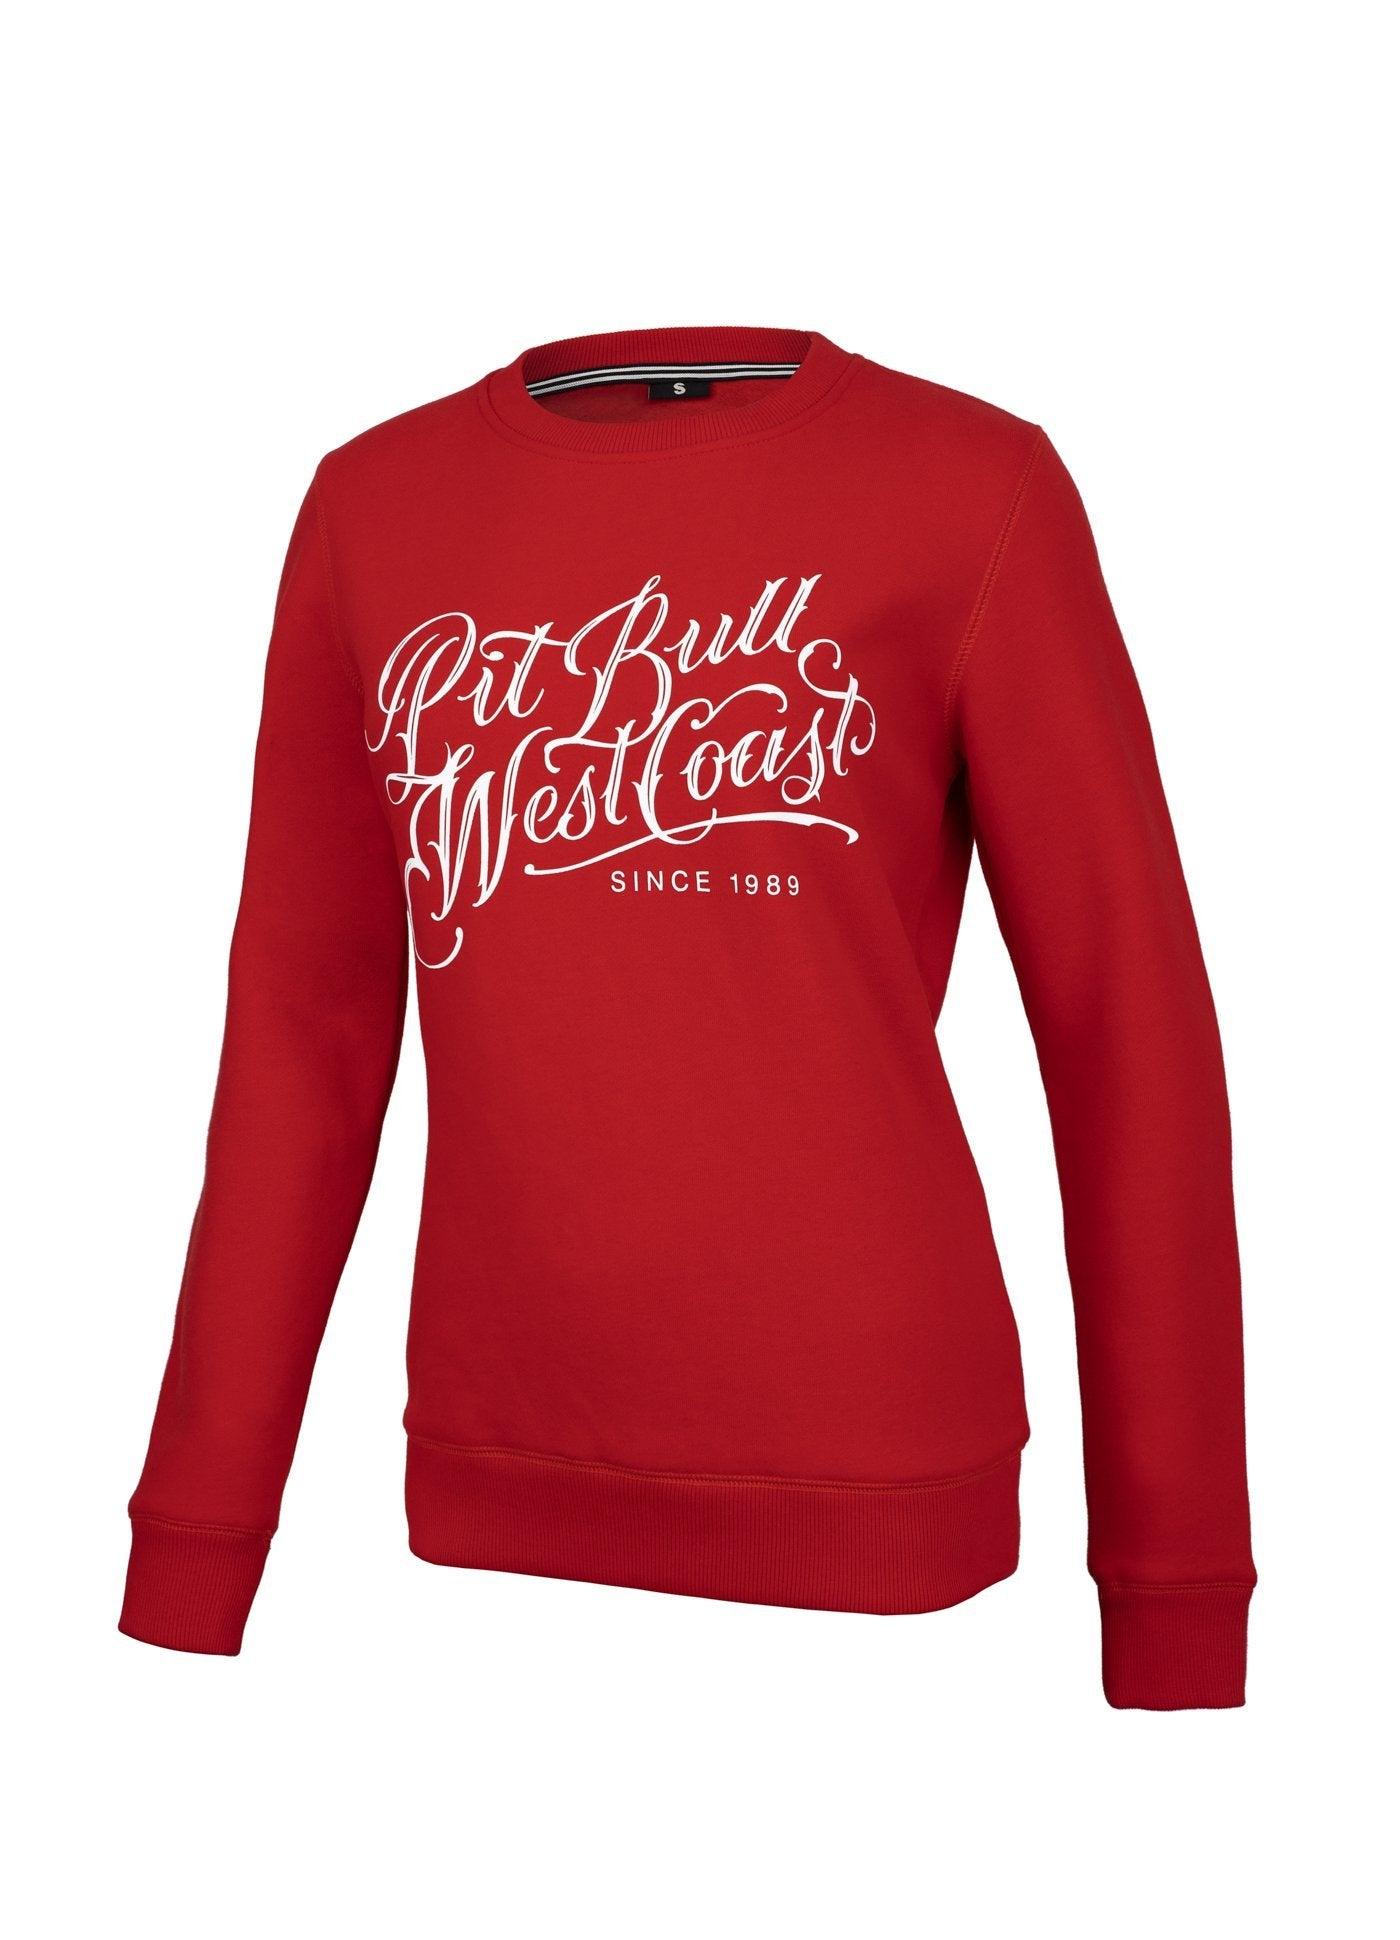 Women Crewneck Blackshaw Red - Pitbull West Coast U.S.A.